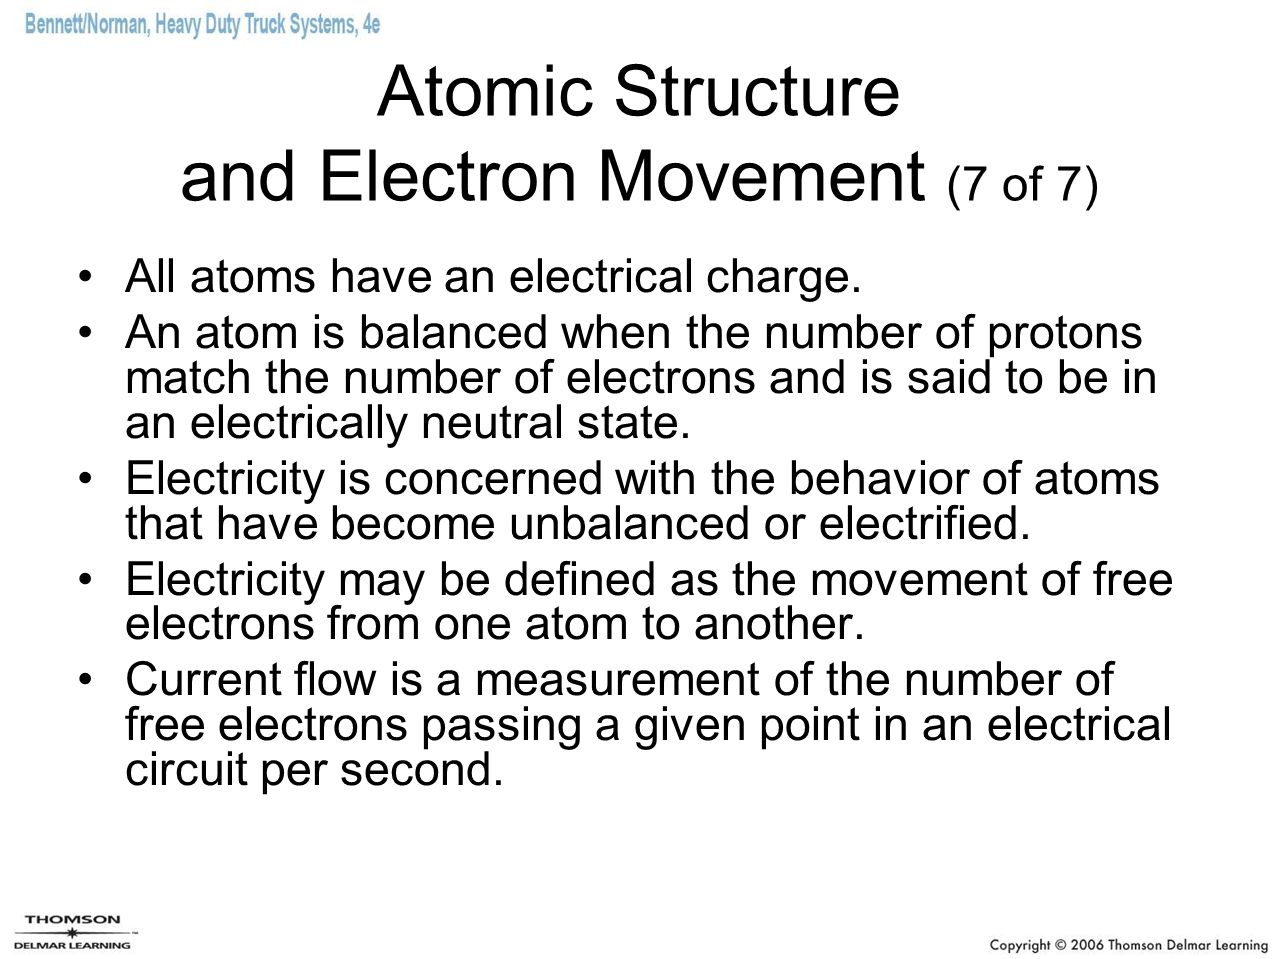 Atomic Structure and Electron Movement (7 of 7)